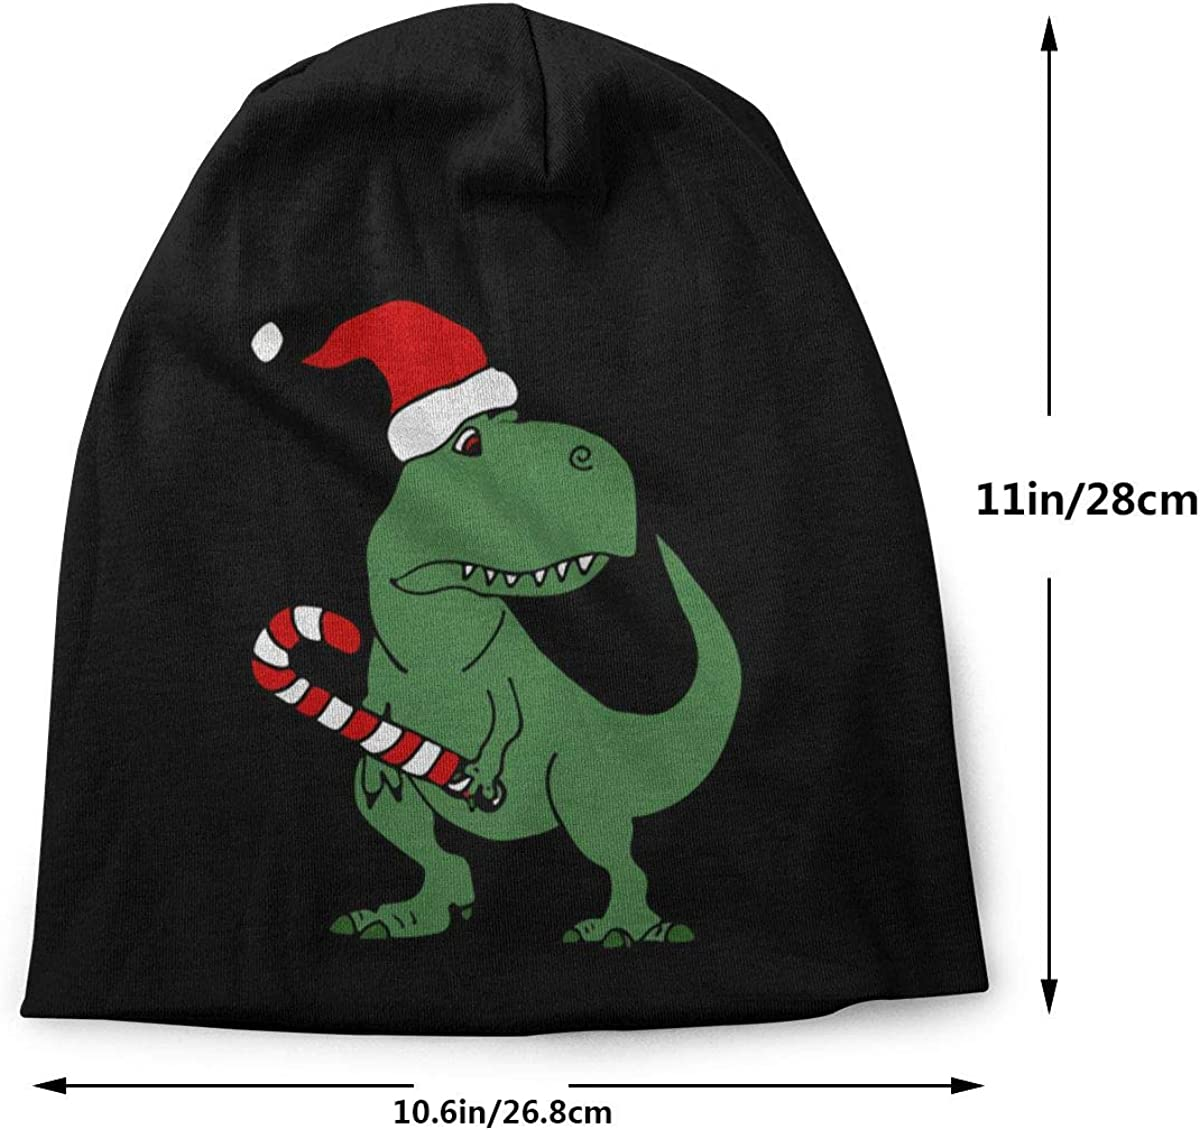 Thin Dinosaur in Santa Hat Christmas Unisex Solid Color Beanie Hat Stretchy /& Soft Winter Cap